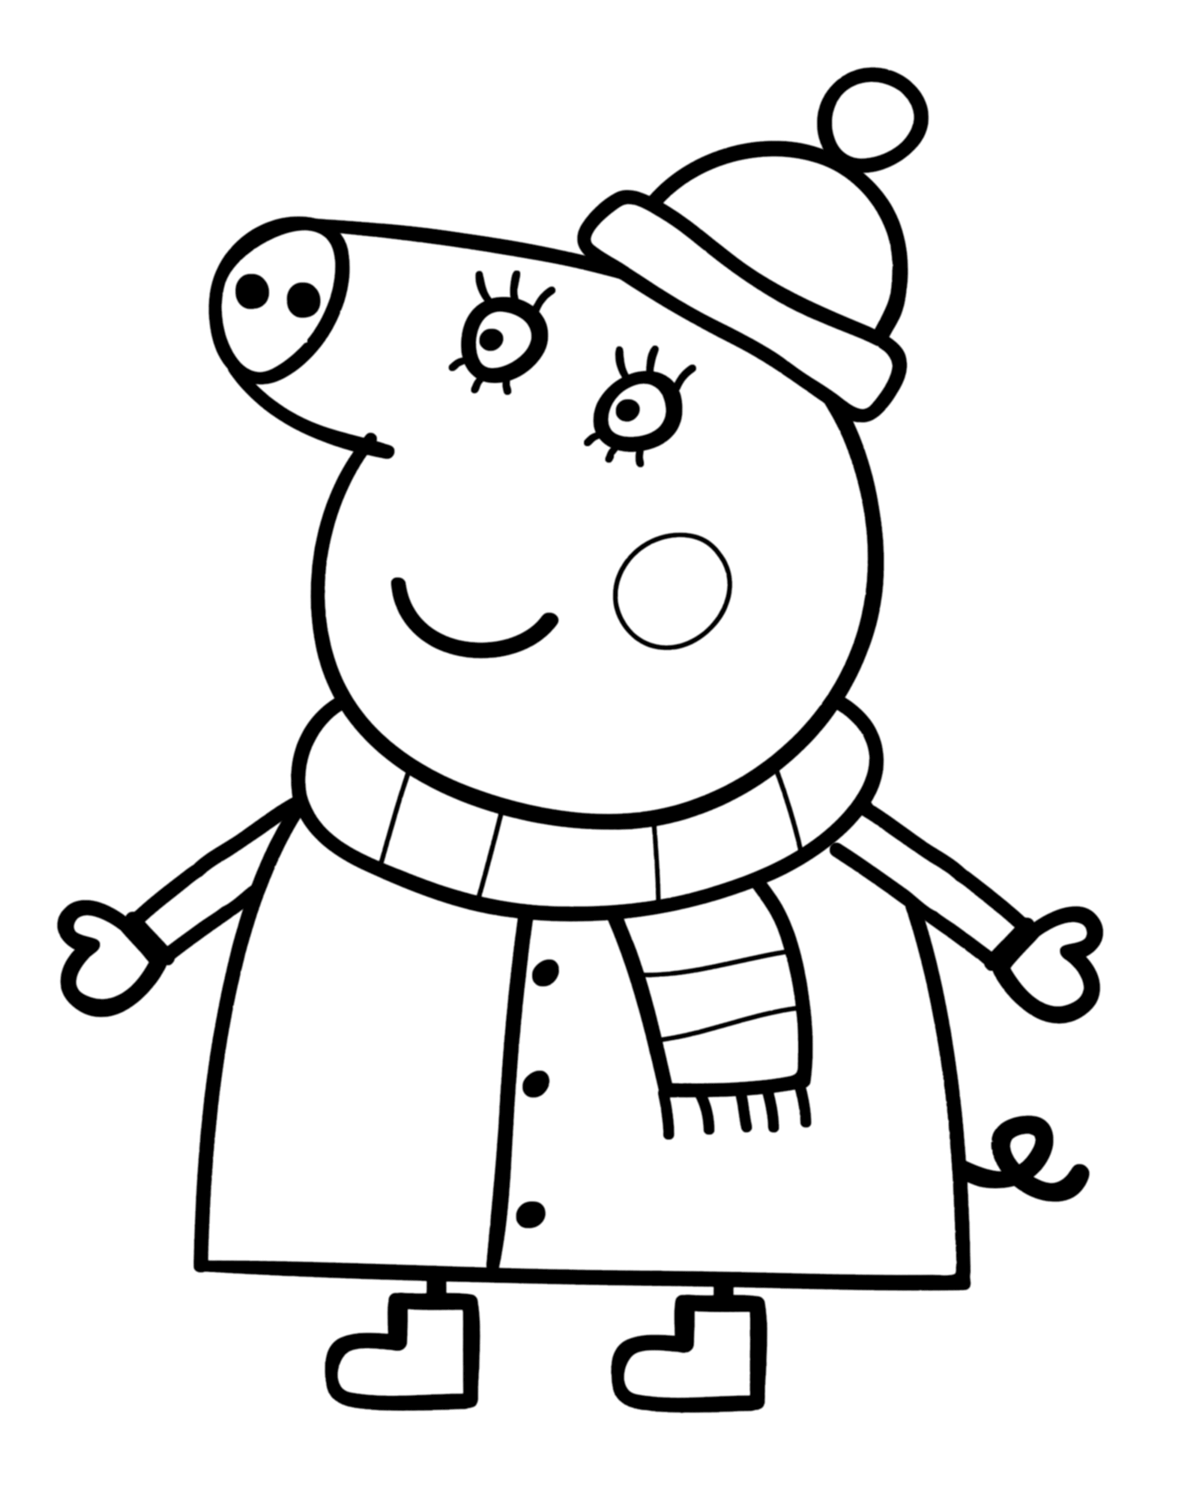 peppa pig coloring in 30 printable peppa pig coloring pages you wont find pig in peppa coloring